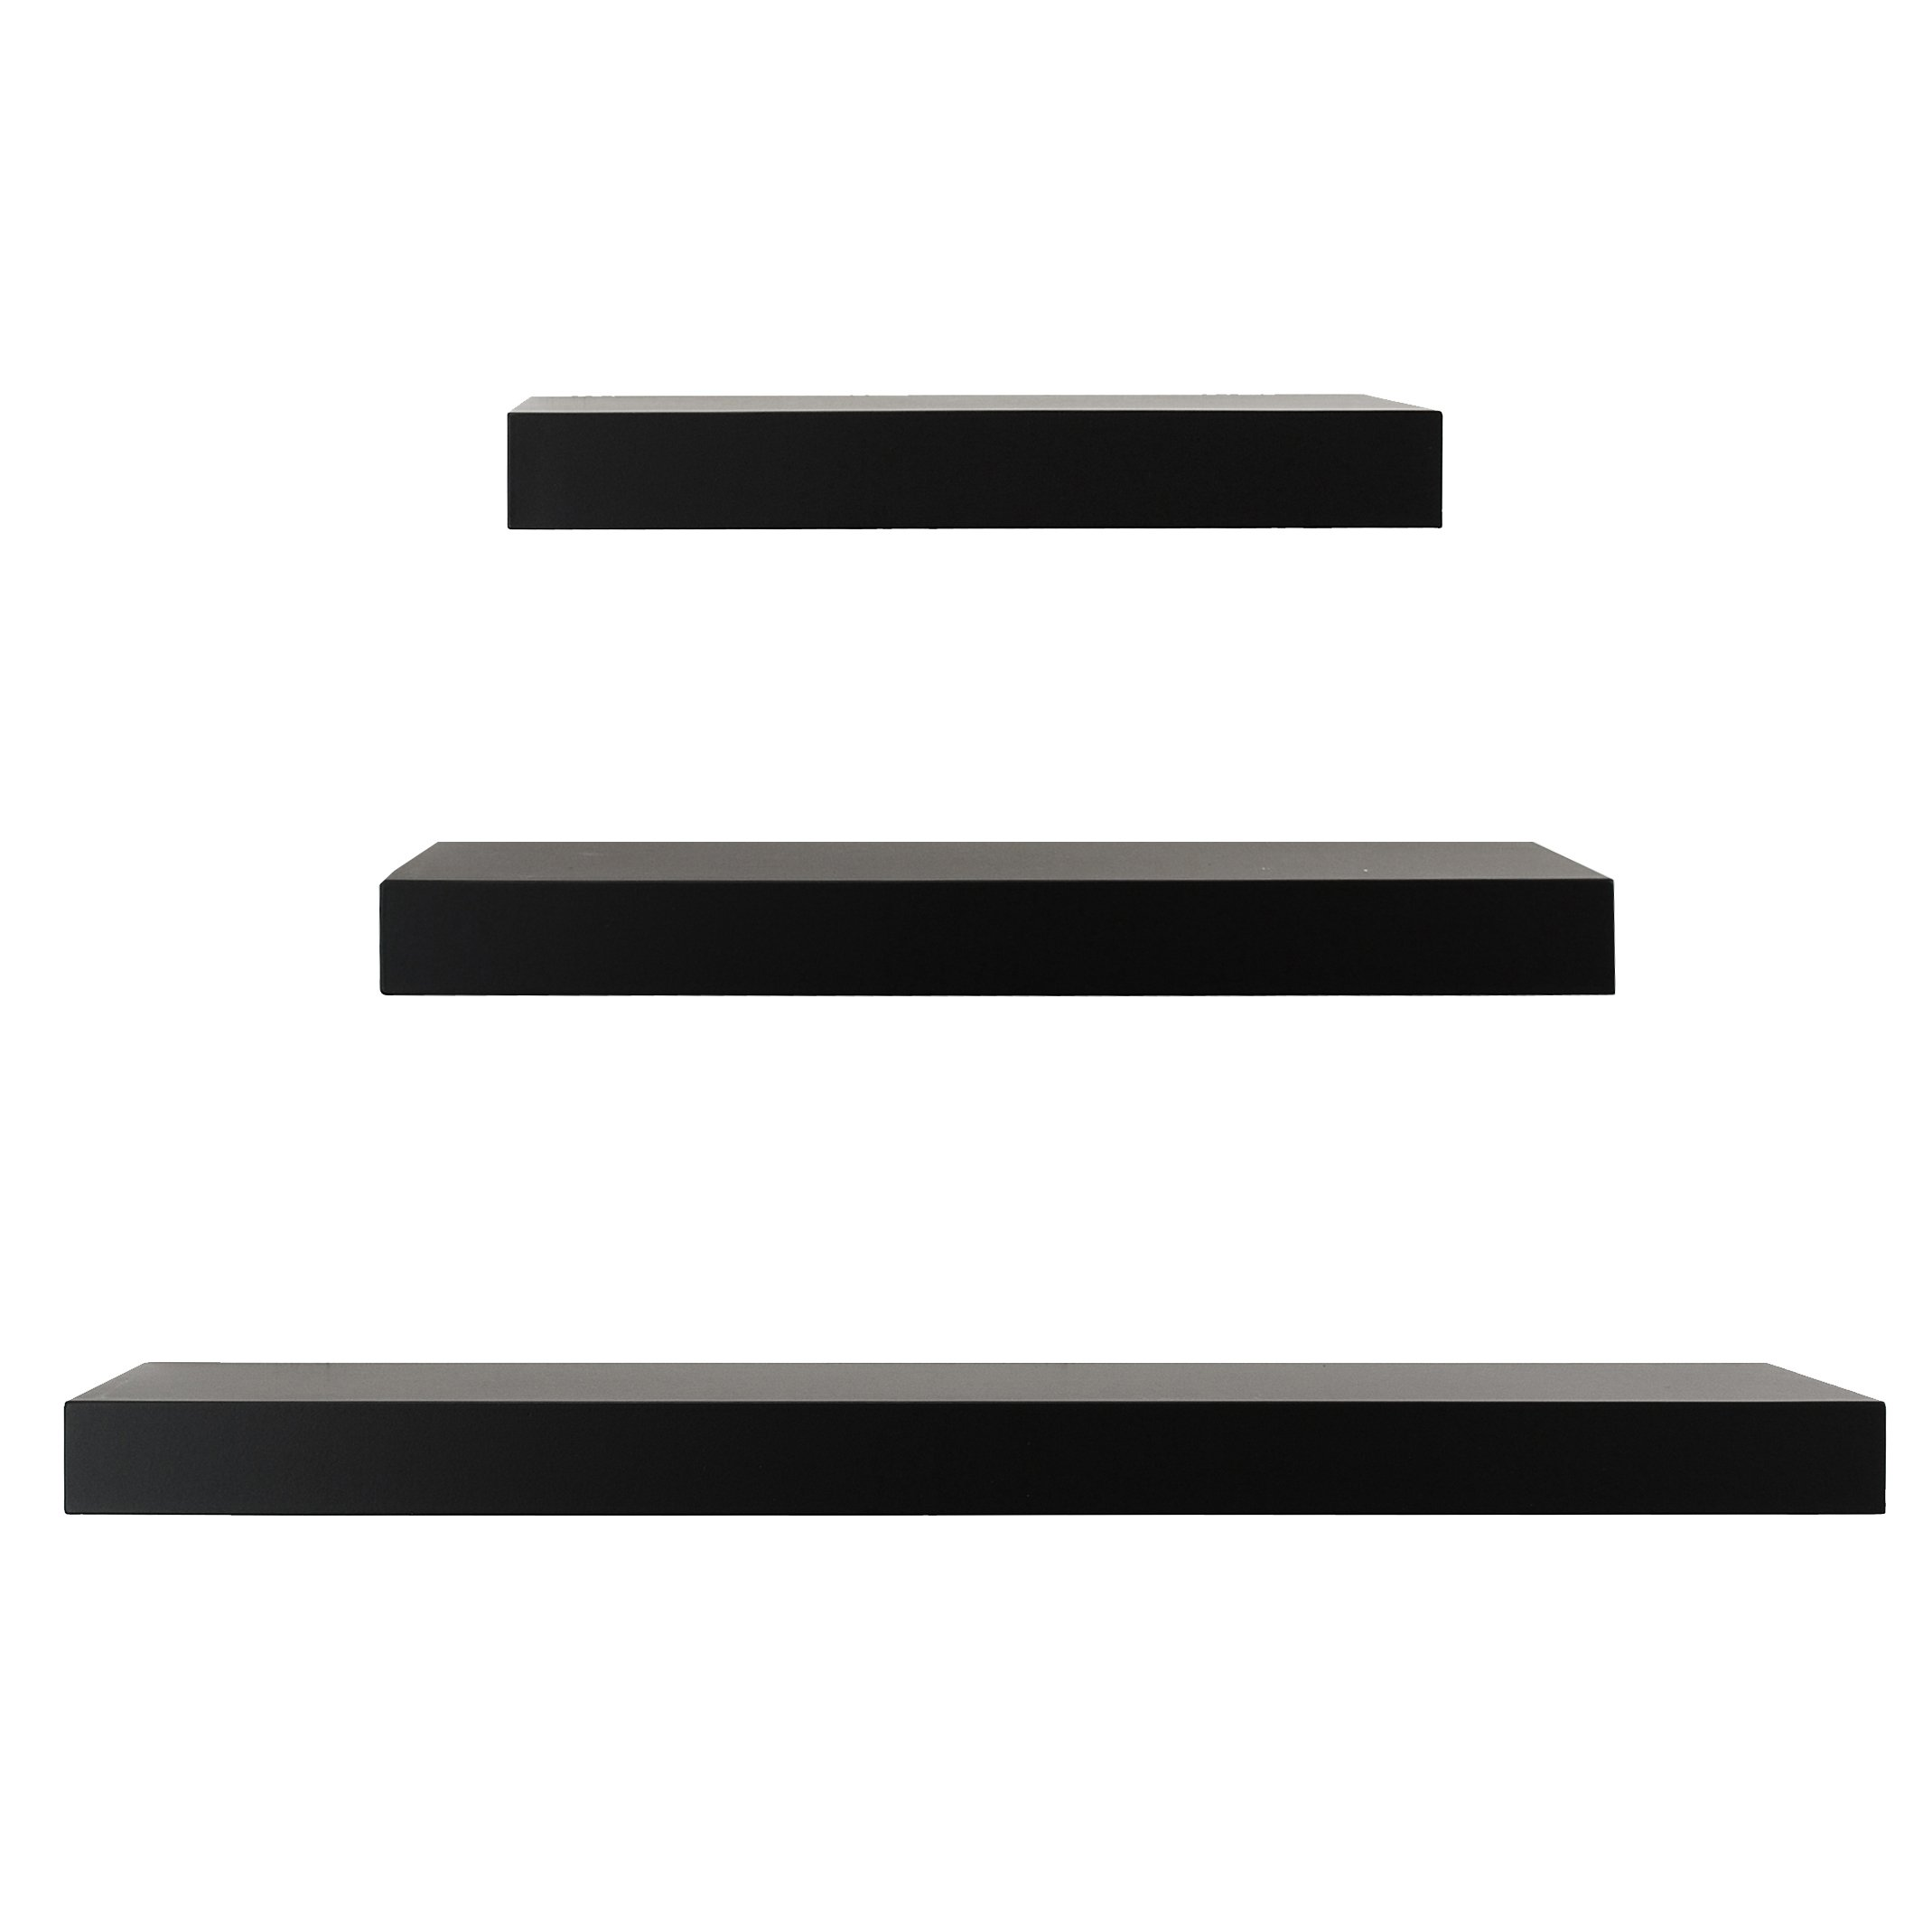 Kiera Grace Maine Wall Ledges , 12 Inch, 16 Inch, 24 Inch, Black, Set of 3